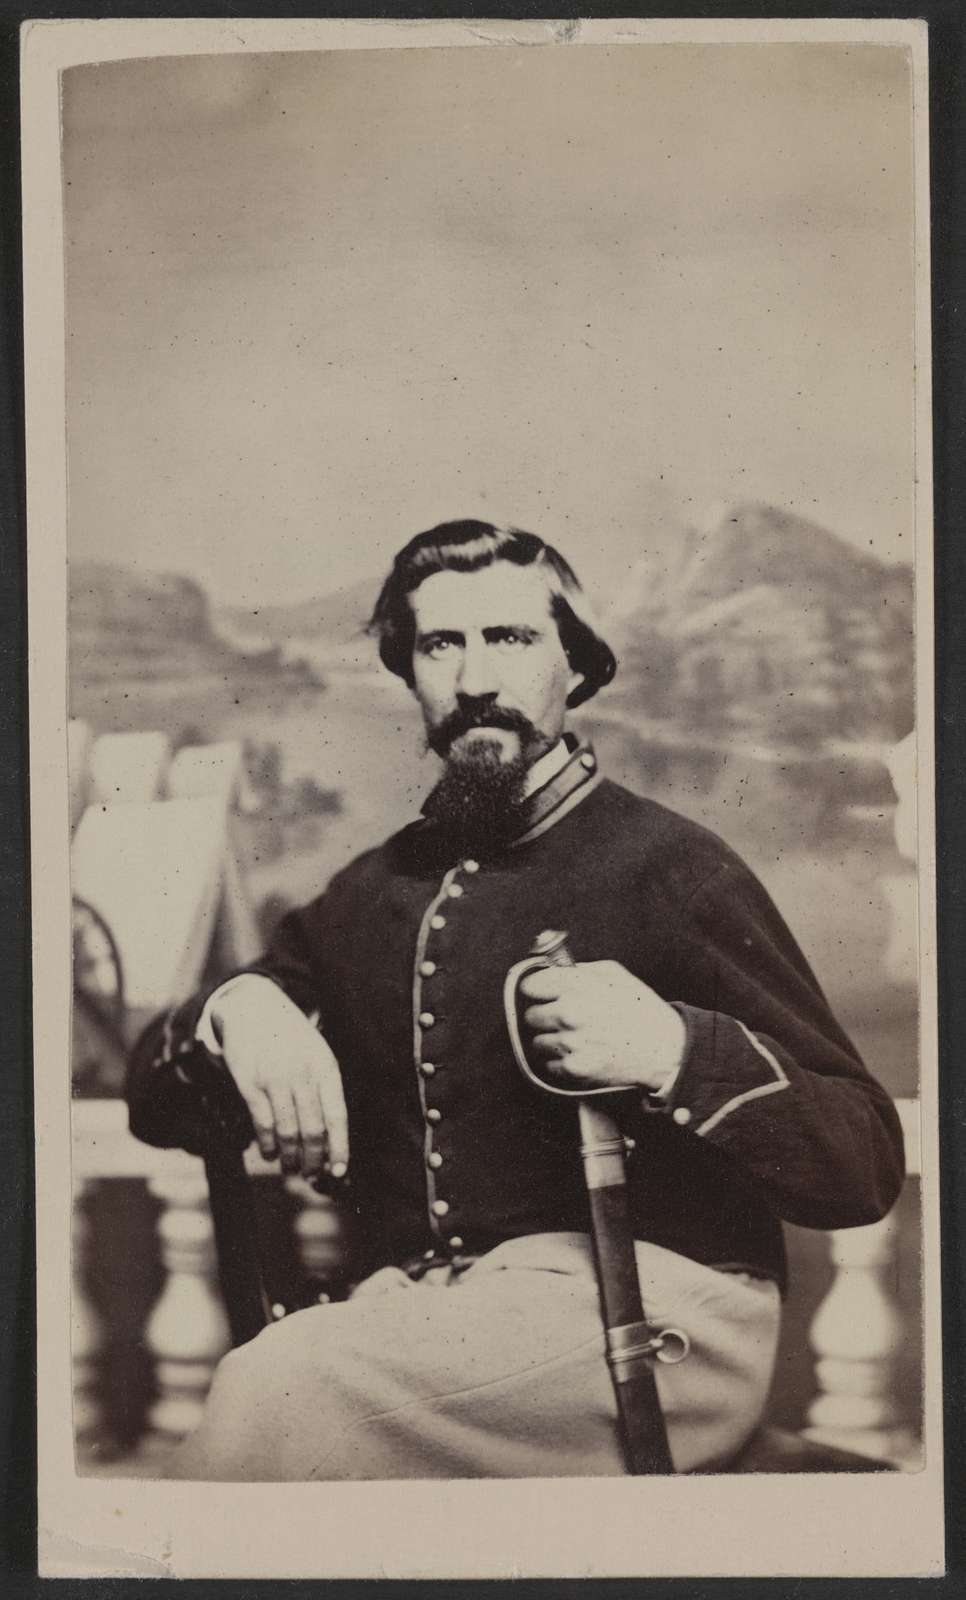 [Soldier named Halsey in Union uniform with sword in front of painted backdrop] / Jno. Holyland, Metropolitan Gallery, 250 Pennsylvania Ave., Washington, D.C.